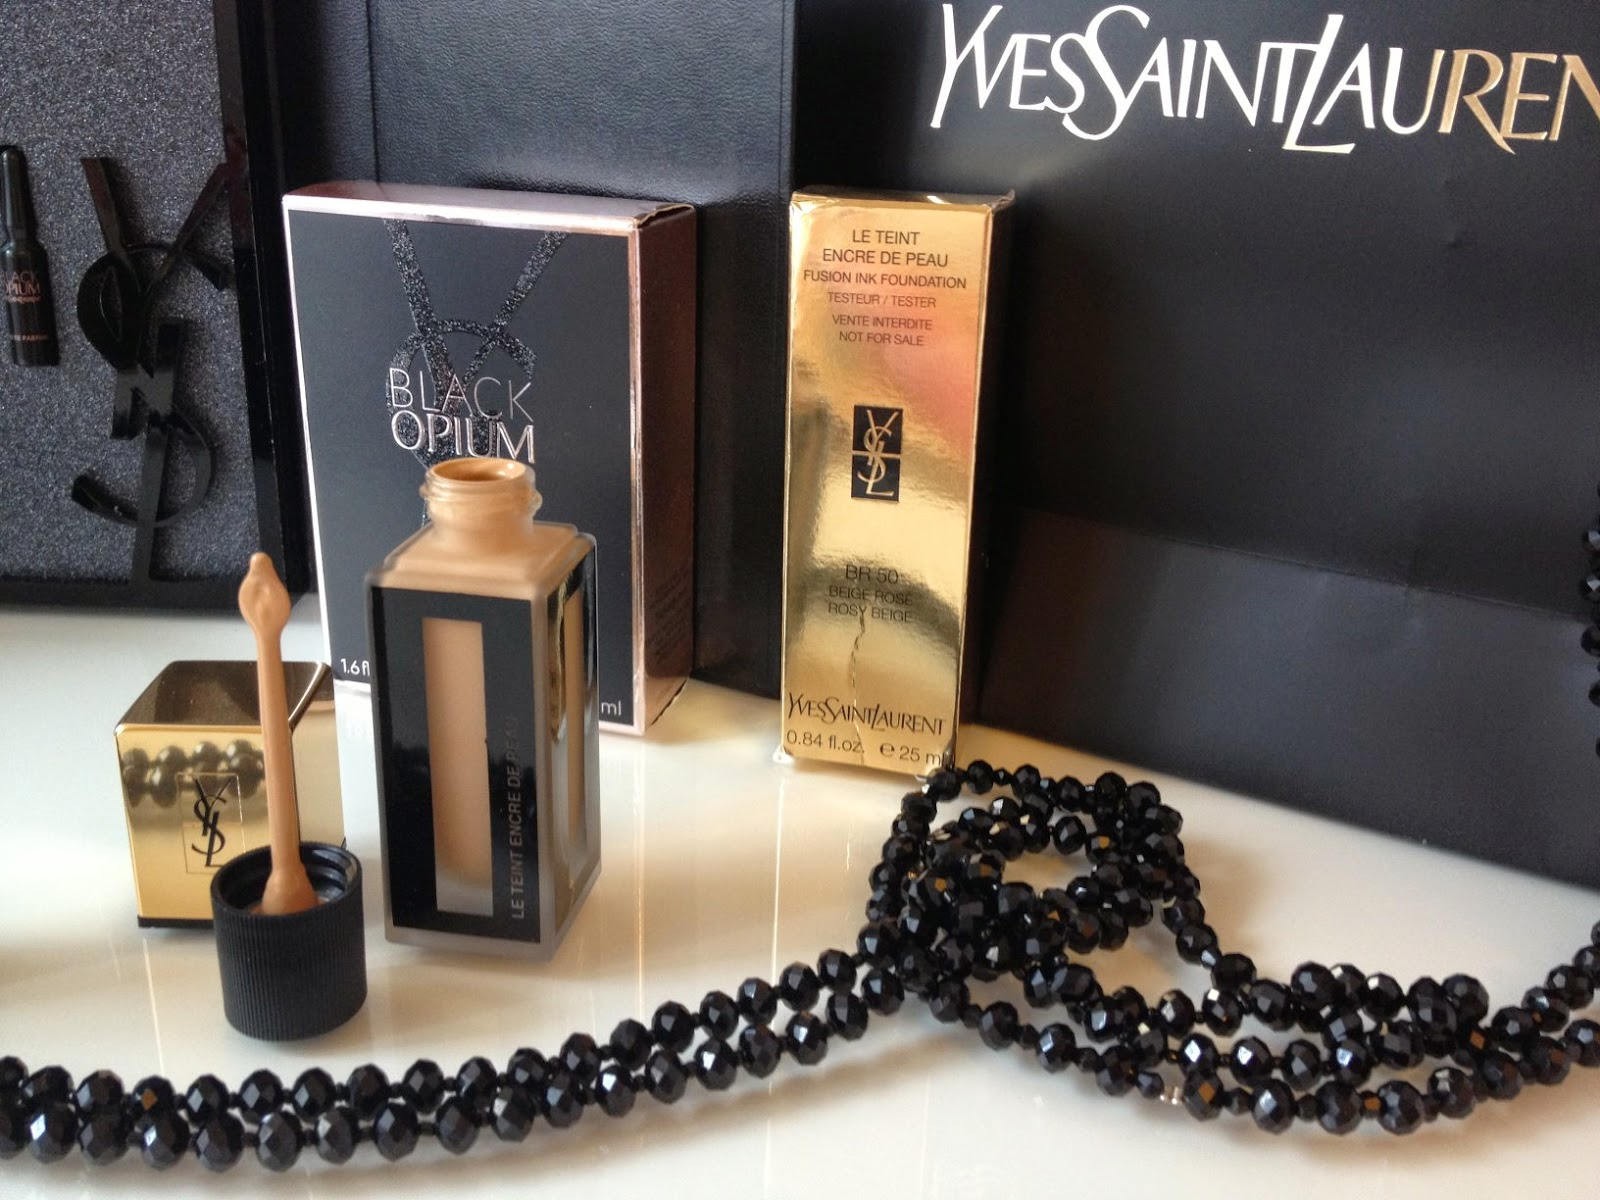 Teint Encre de Peau, new foundation from Yves Saint Laurent Beauté, the best lightweight long lasting foundation, Fashion and Cookies, fashion blogger